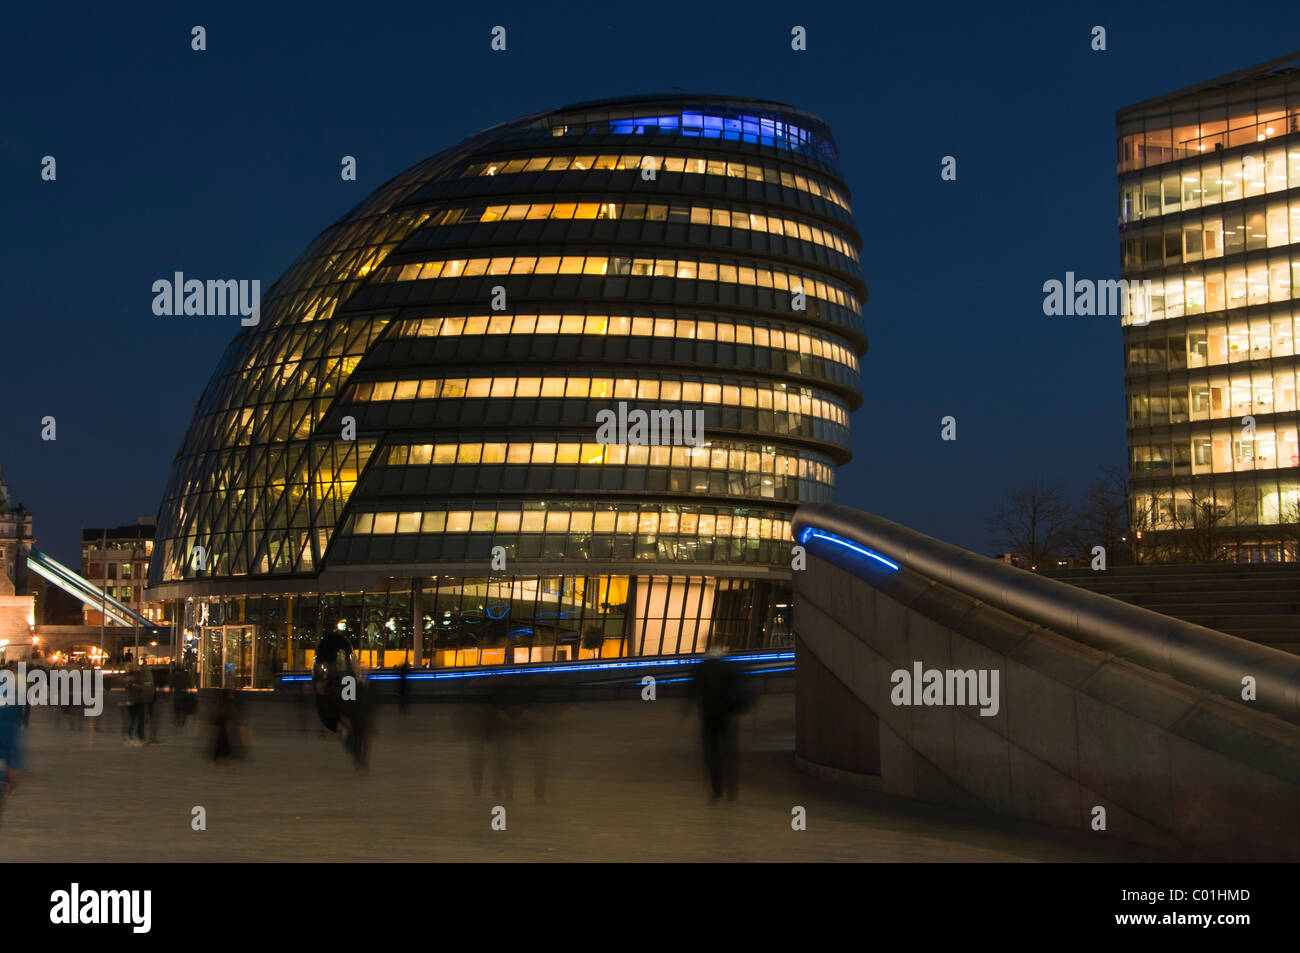 City Hall, home to Mayor of London, London Assembly and Greater London Authority GLA, London, England. - Stock Image